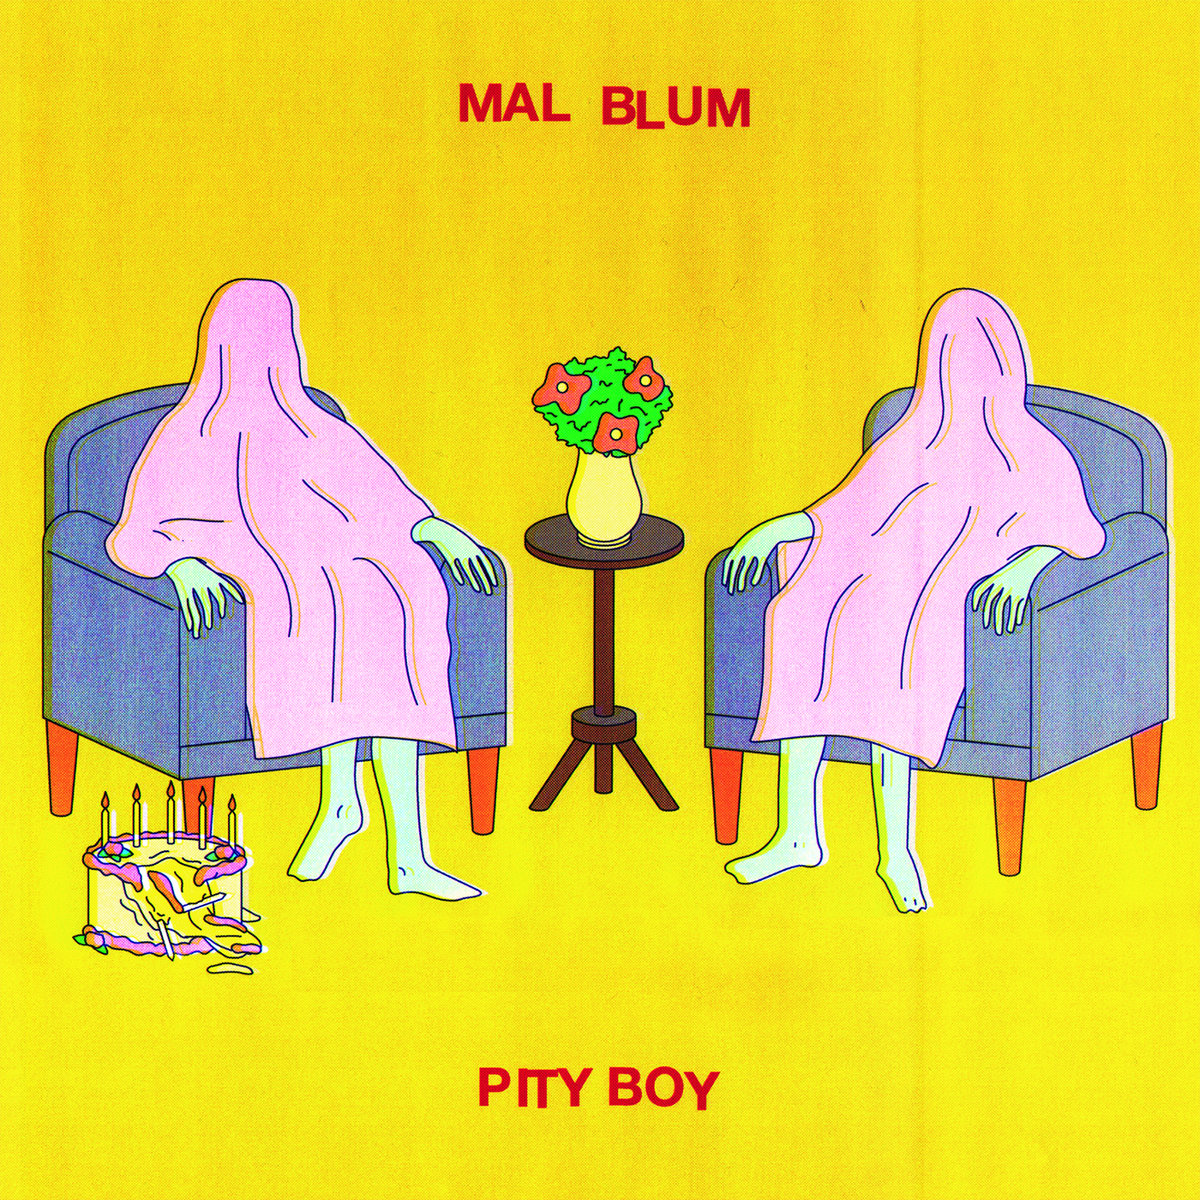 Mal Blum,Pity Boy - This indie pop rock beams with angsty teen summer vibes. Guaranteed to make you smile ear to ear.